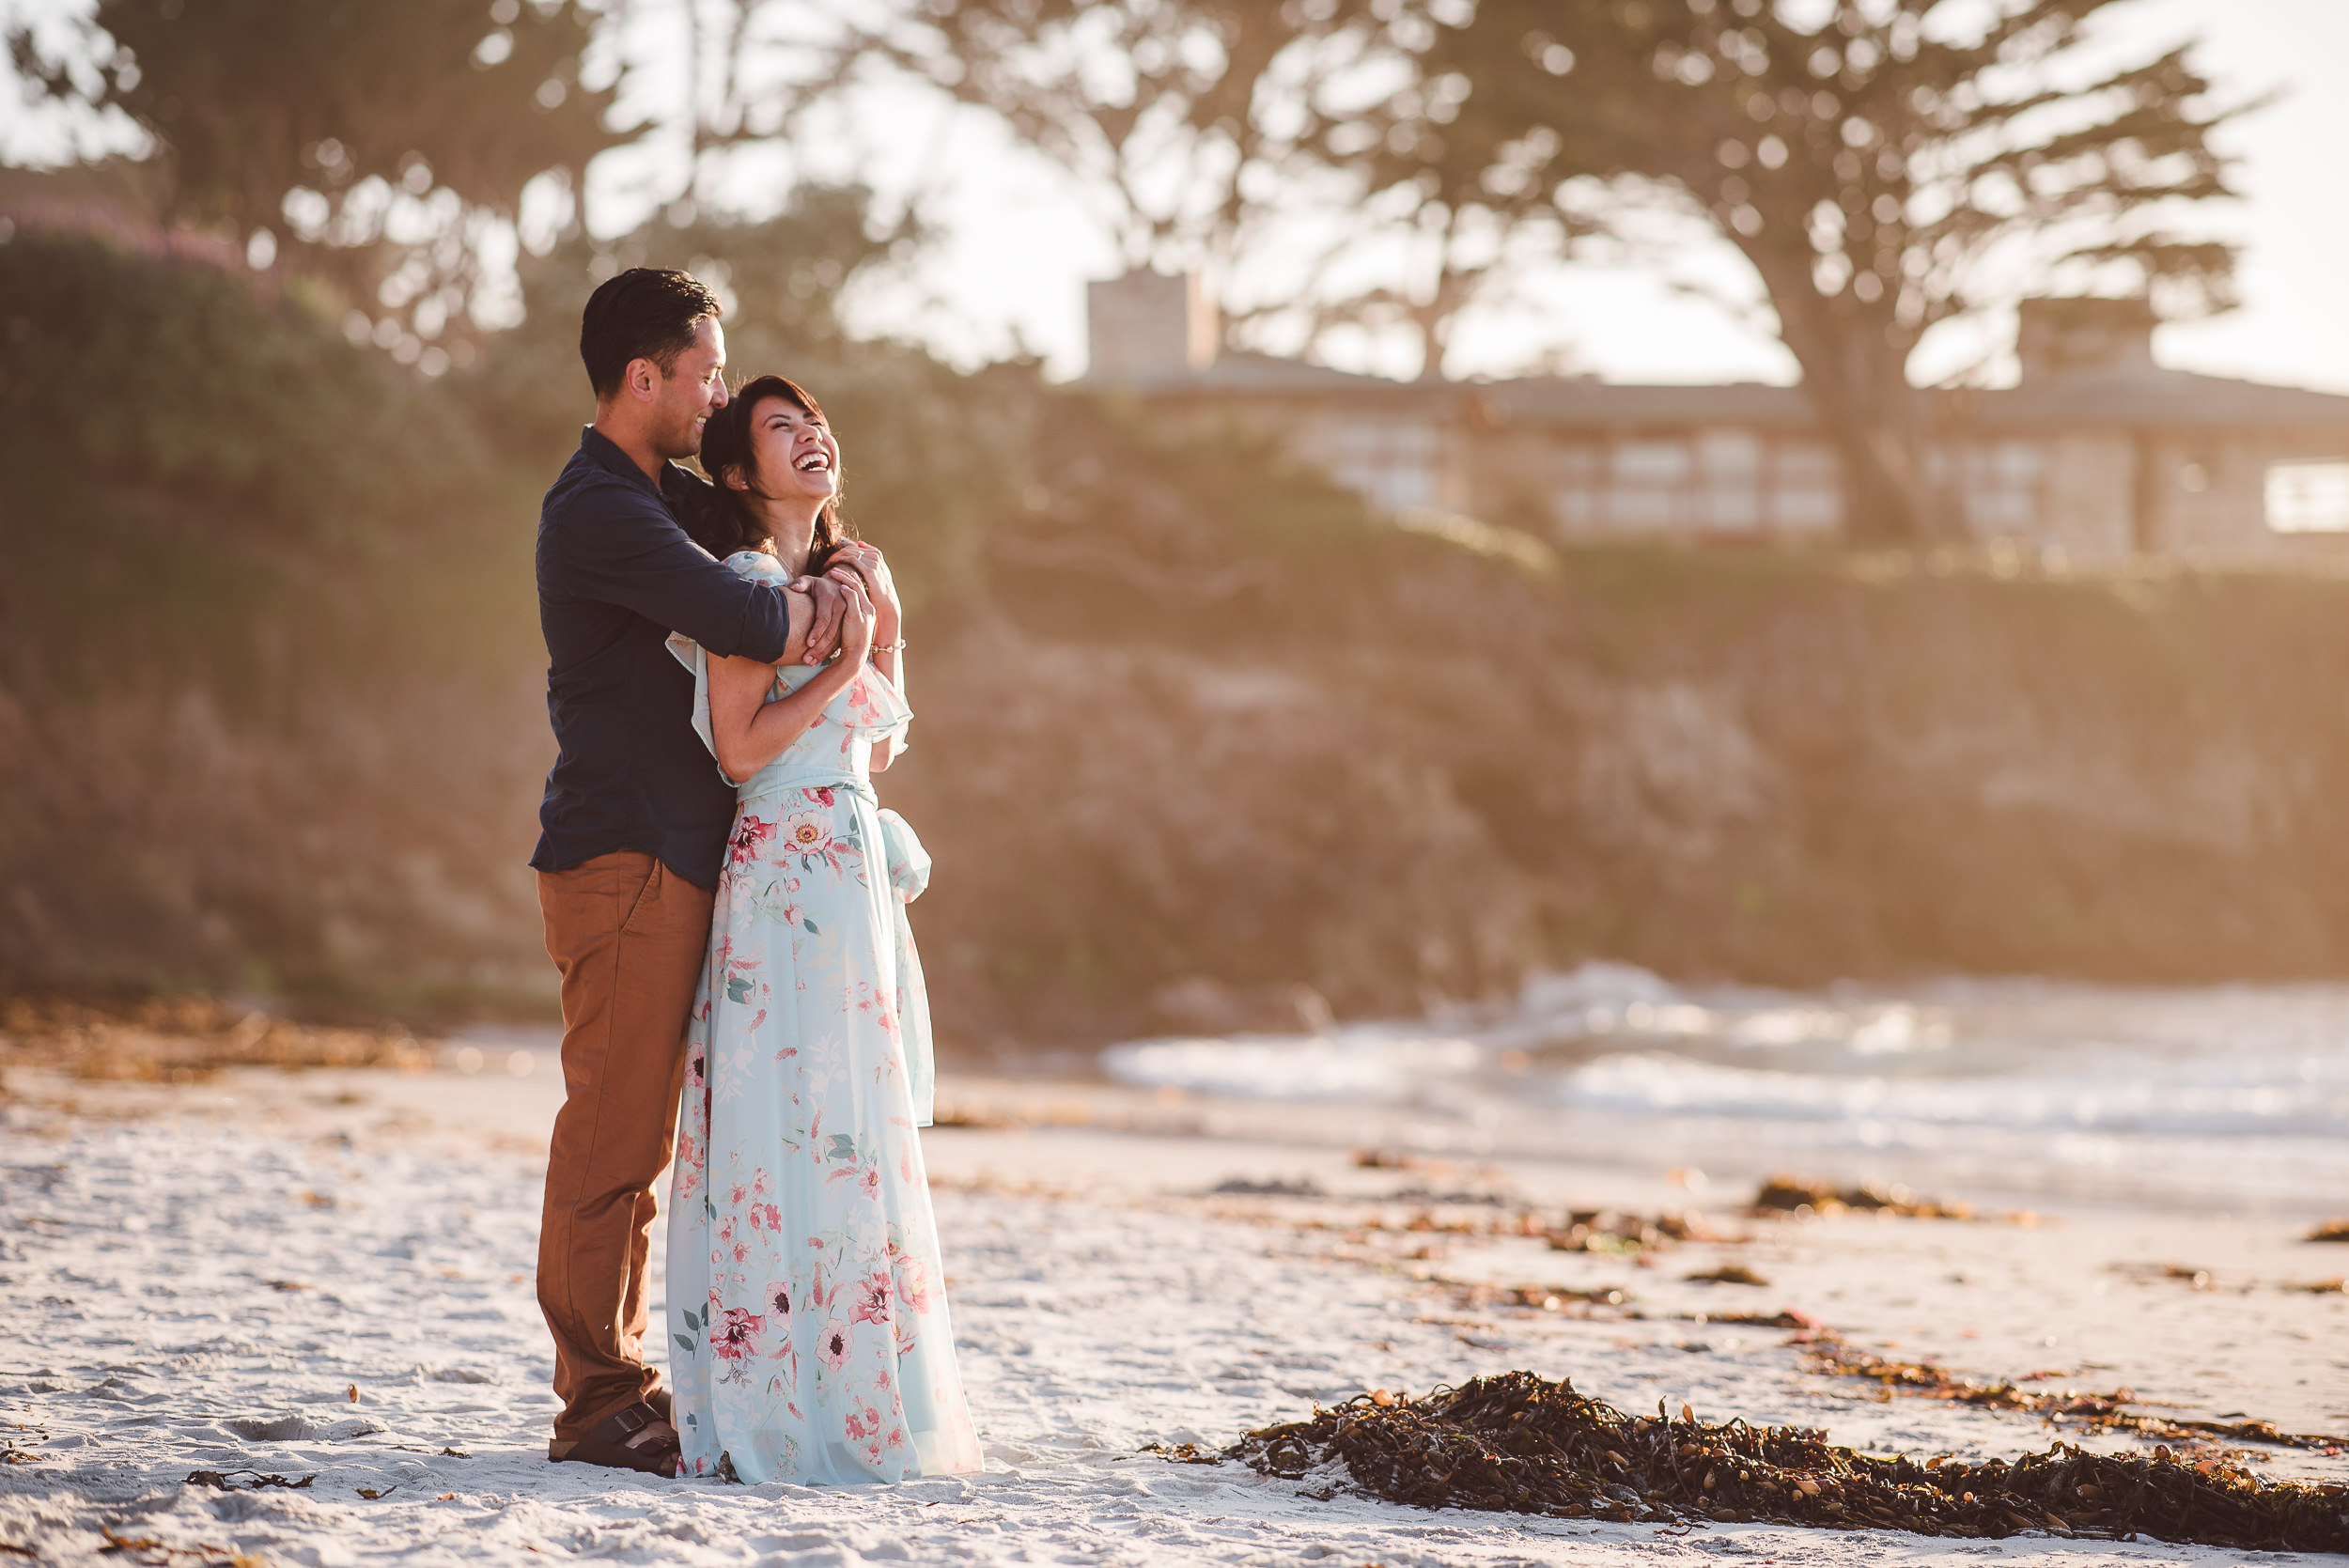 Carmel-by-the-Sea-Engagement-Photography-011.jpg